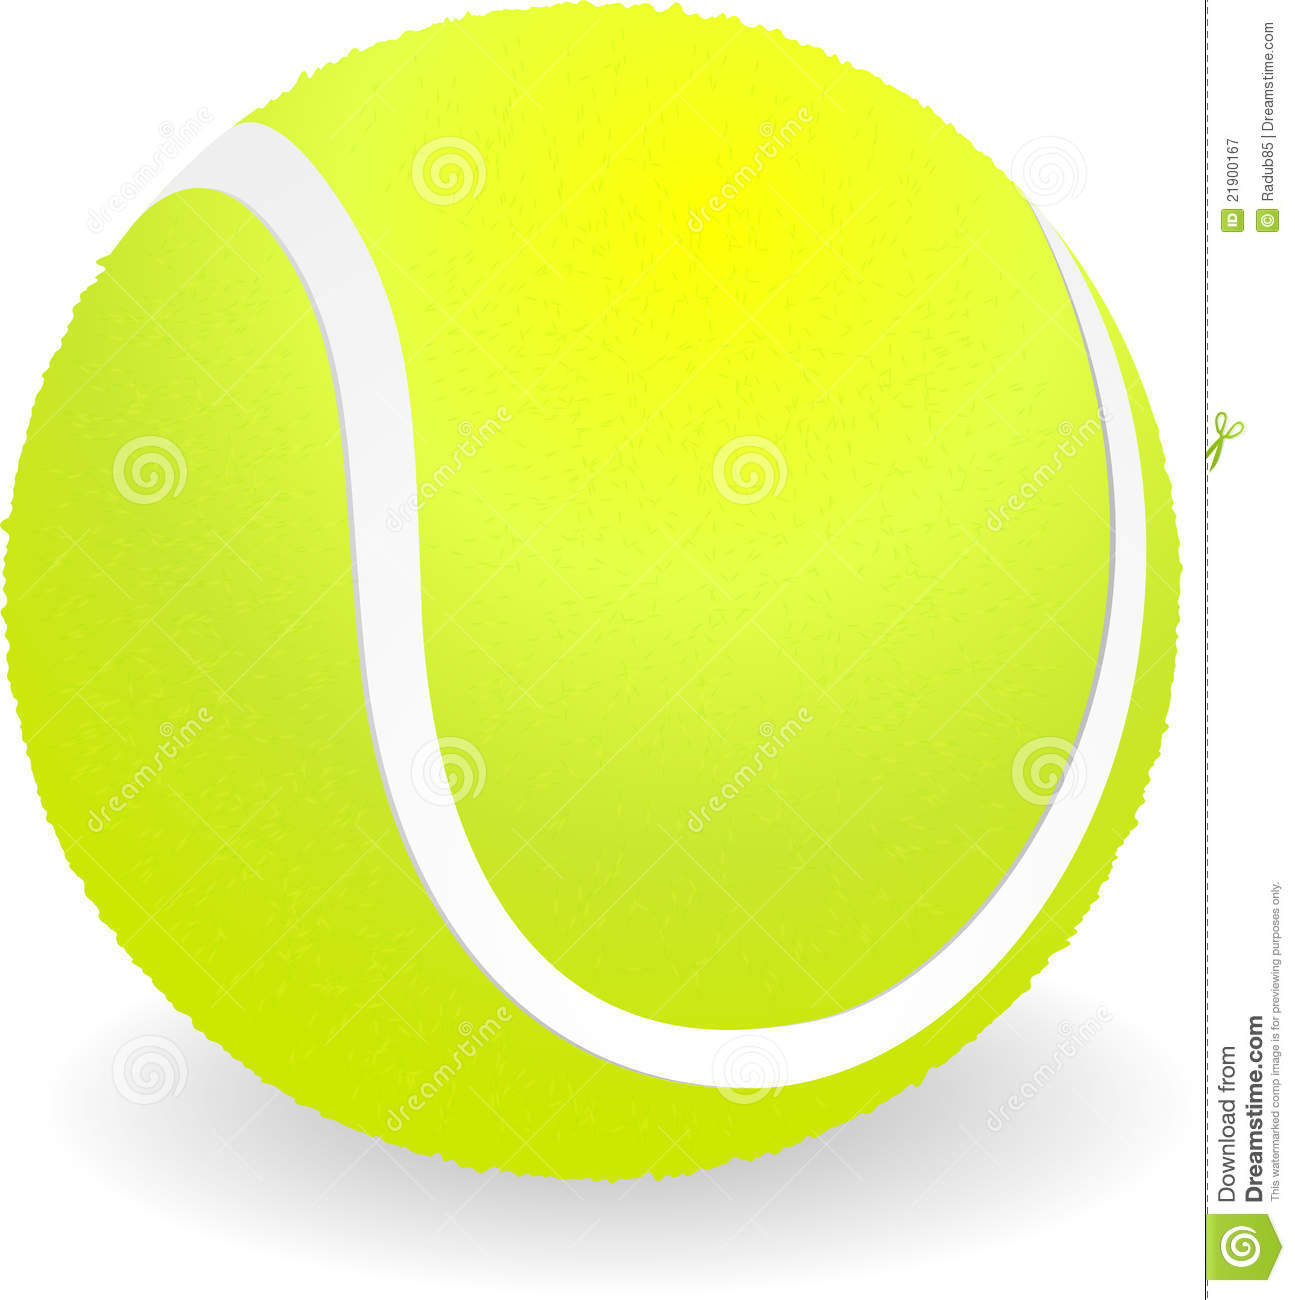 Tennis Ball Royalty Free Stock Photography Image 21900167